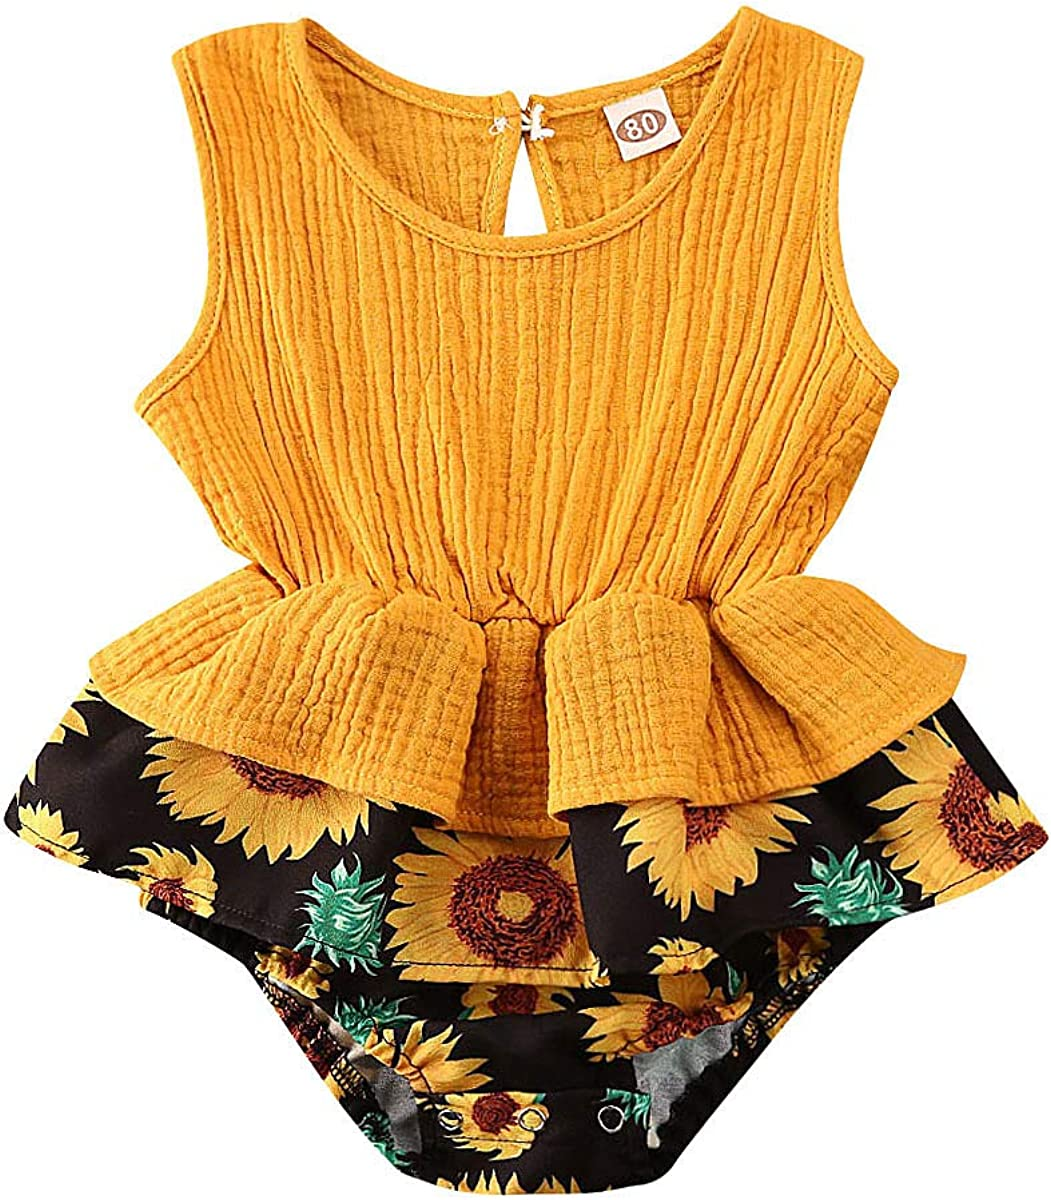 Romper Bodysuit Baby Girl,Newborn Baby Girl Romper Bodysuits Cotton Flutter Sleeve One-Piece Cloth Outfits,Girls Accessories,Yellow,80